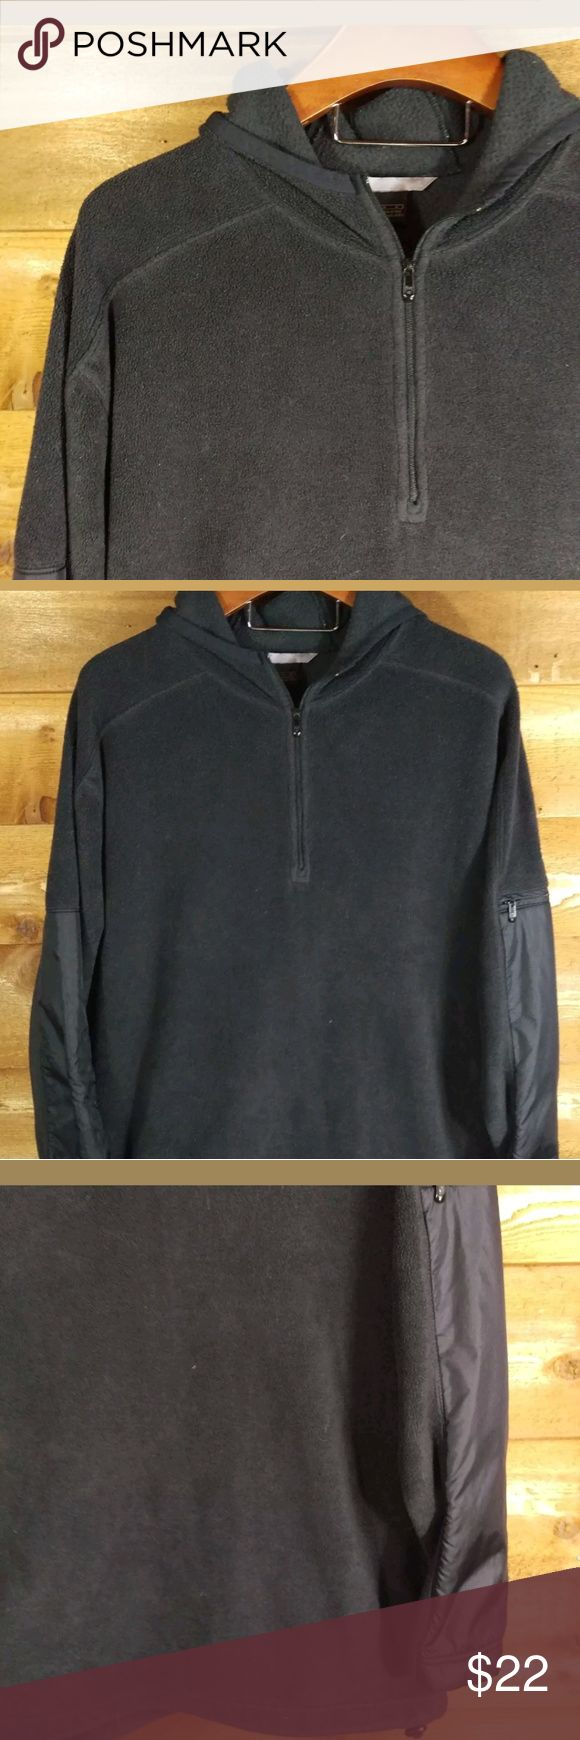 """Nike Fleece Hoodie Generous Fit Mens Sz. L Nike Pullover Black Hoodiewith a comfy loose fit. Excellent condition. Smoke free.  2 front zipper pockets, zipper pocket on sleeve  100% Polyester  Size L Chest 27"""" across Sleeve 32"""" Length 31""""  ST2 Nike Shirts Sweatshirts & Hoodies"""